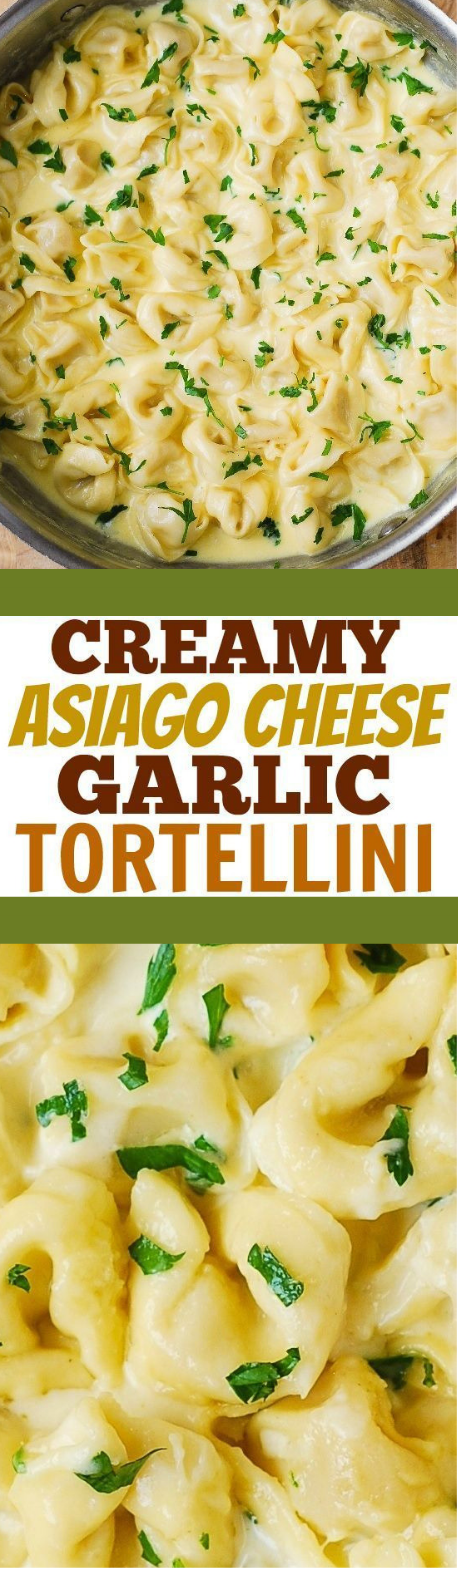 CREAMY ASIAGO CHEESE TORTELLINI